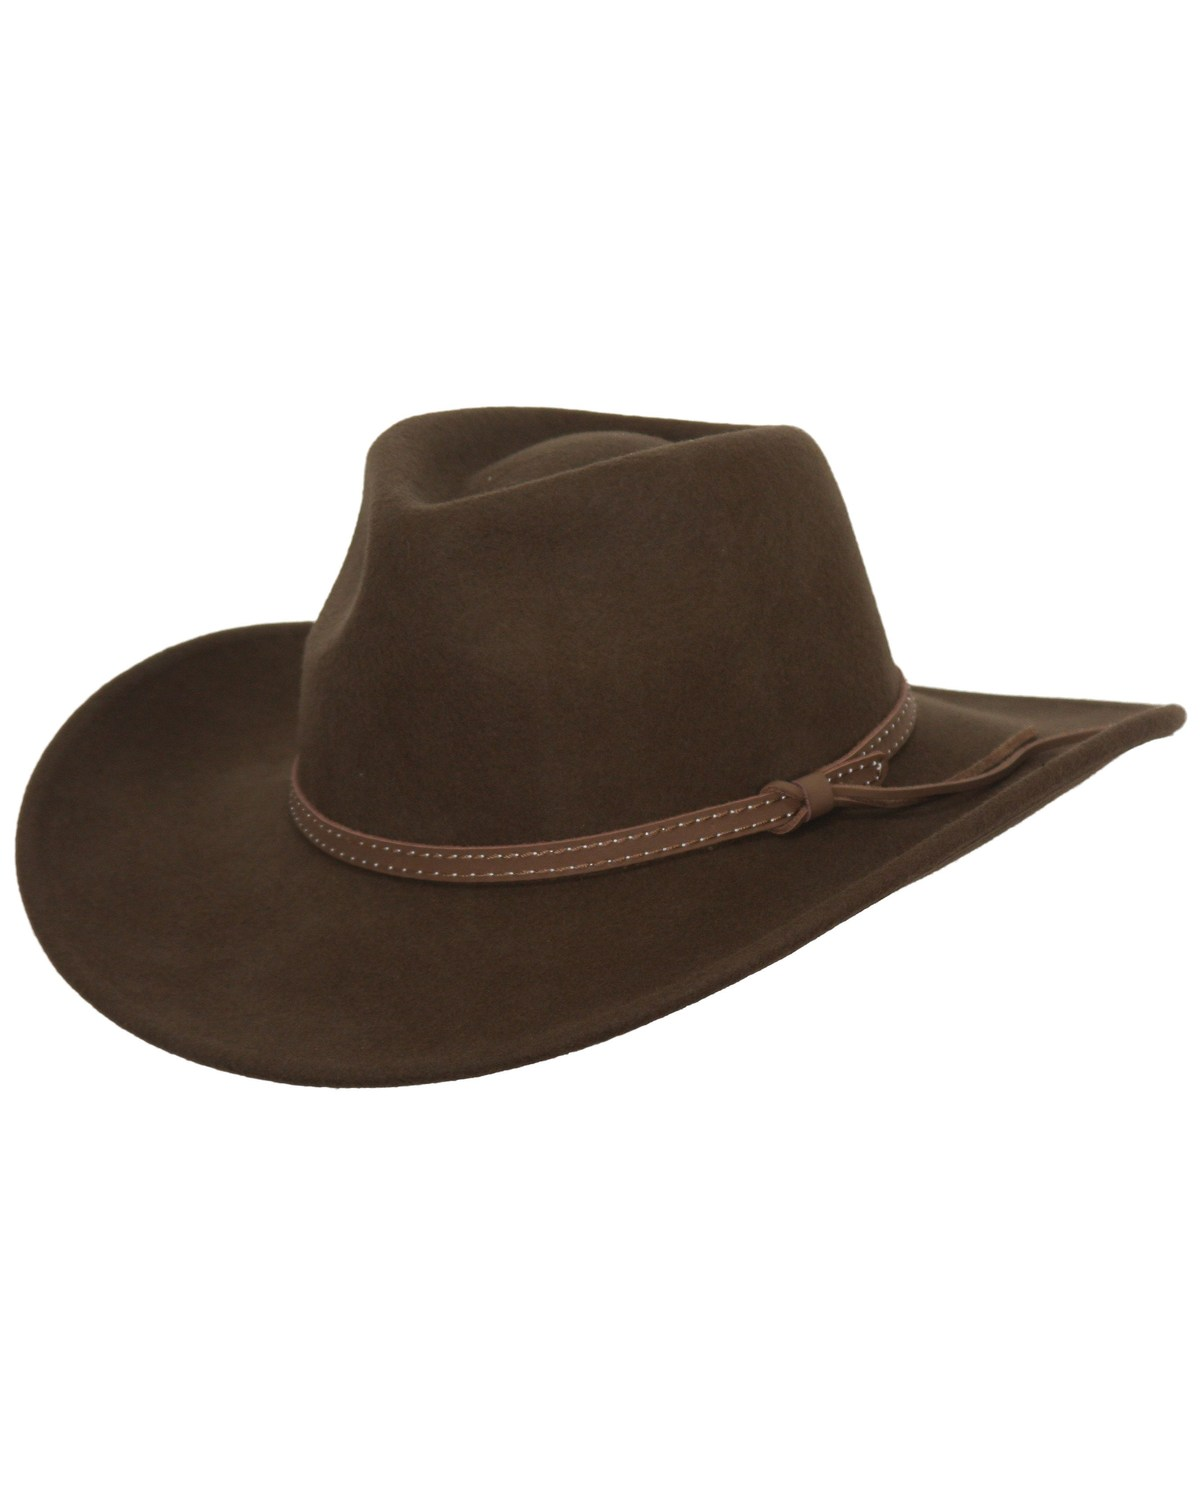 Outback Trading Co. Cooper River Crushable Australian Wool Hat ... 955a30f8799